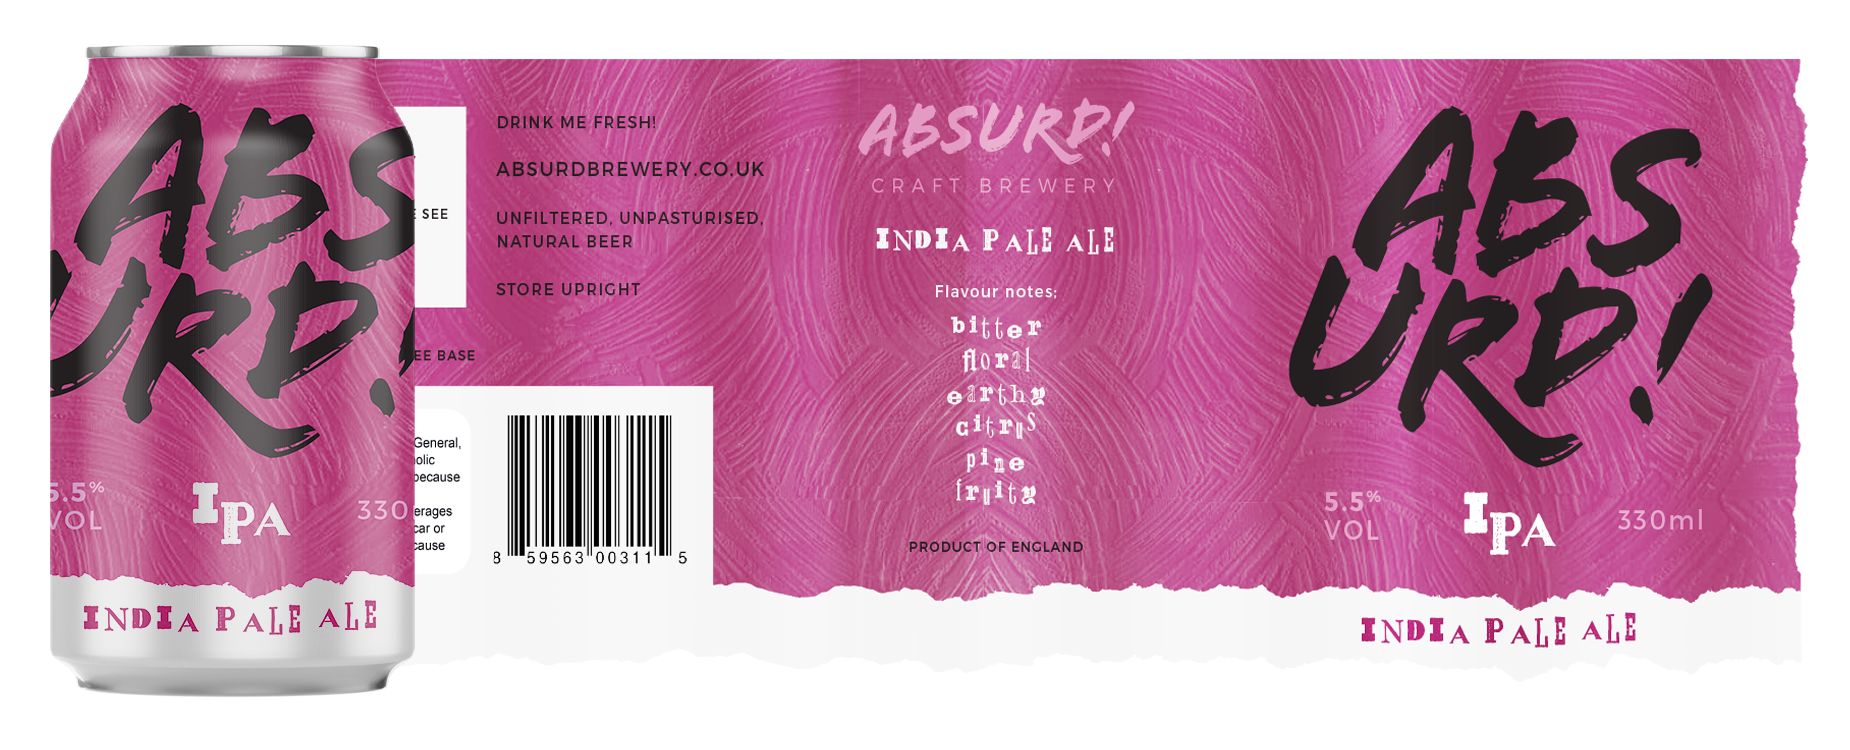 Absurd! IPA Label